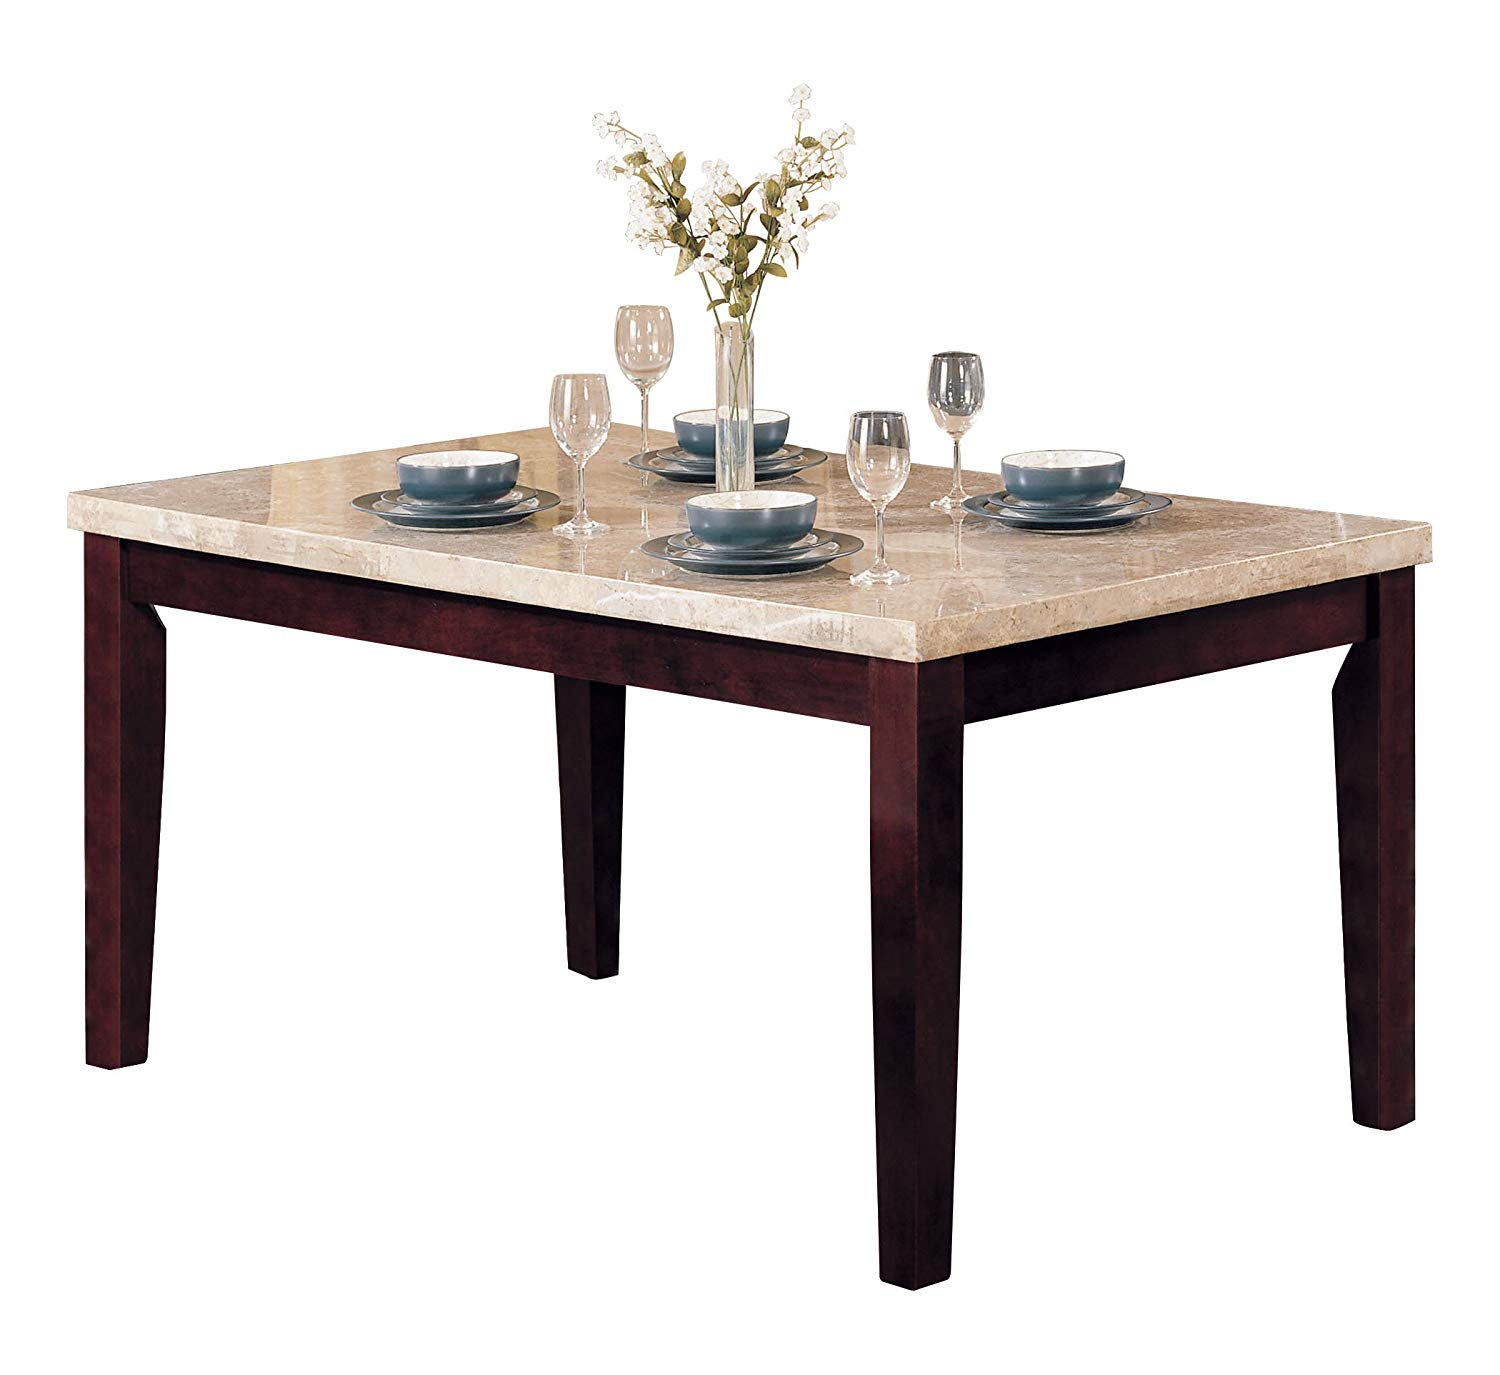 Acme Britney Walnut Dining Table With White Marble Top Buy Online In Lithuania At Lithuania Desertcart Com Productid 31105491